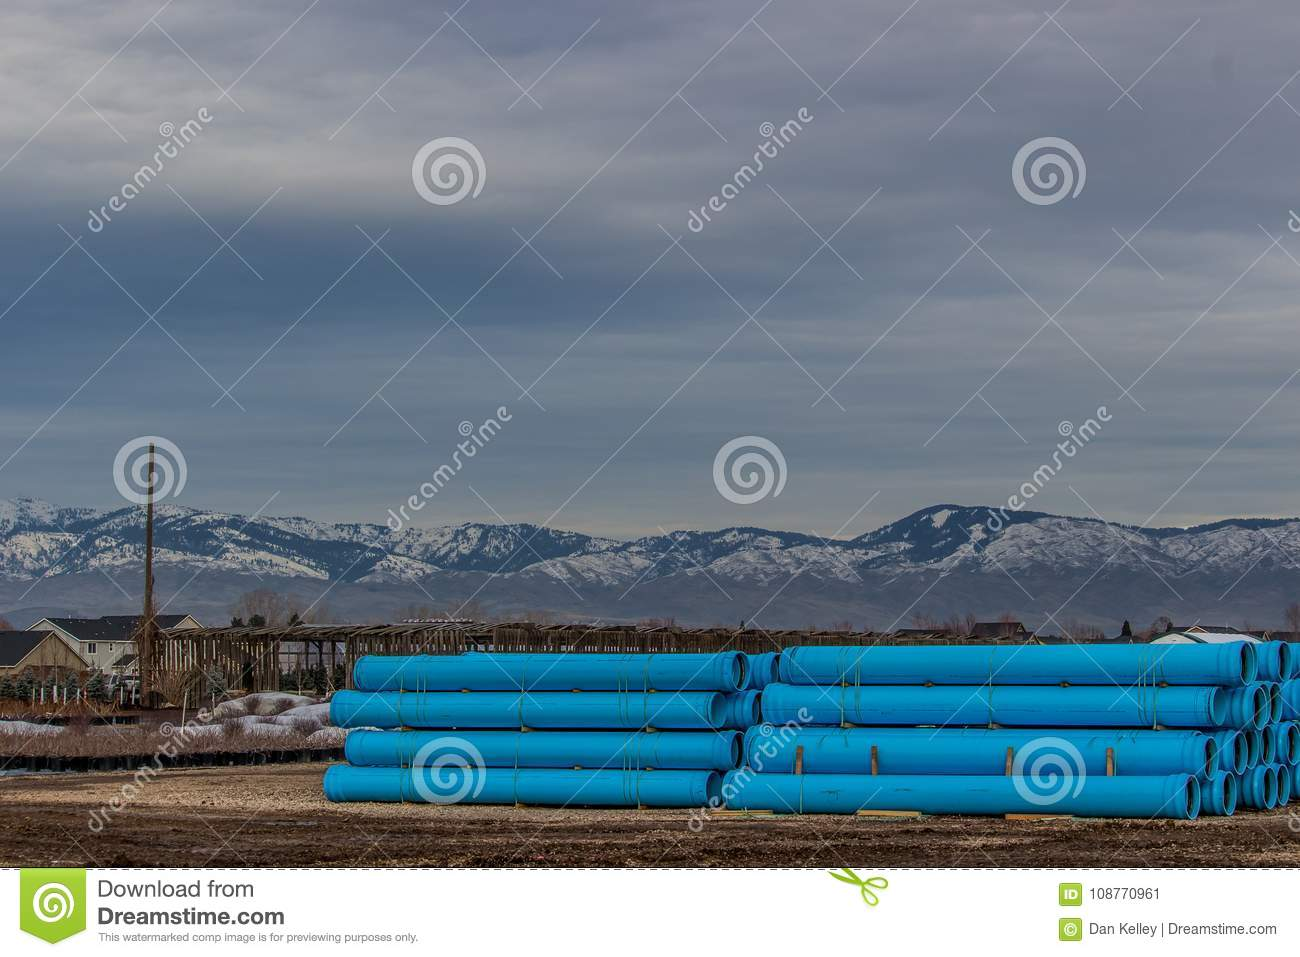 Drain pipe staged for winter road construction in Boise Idaho